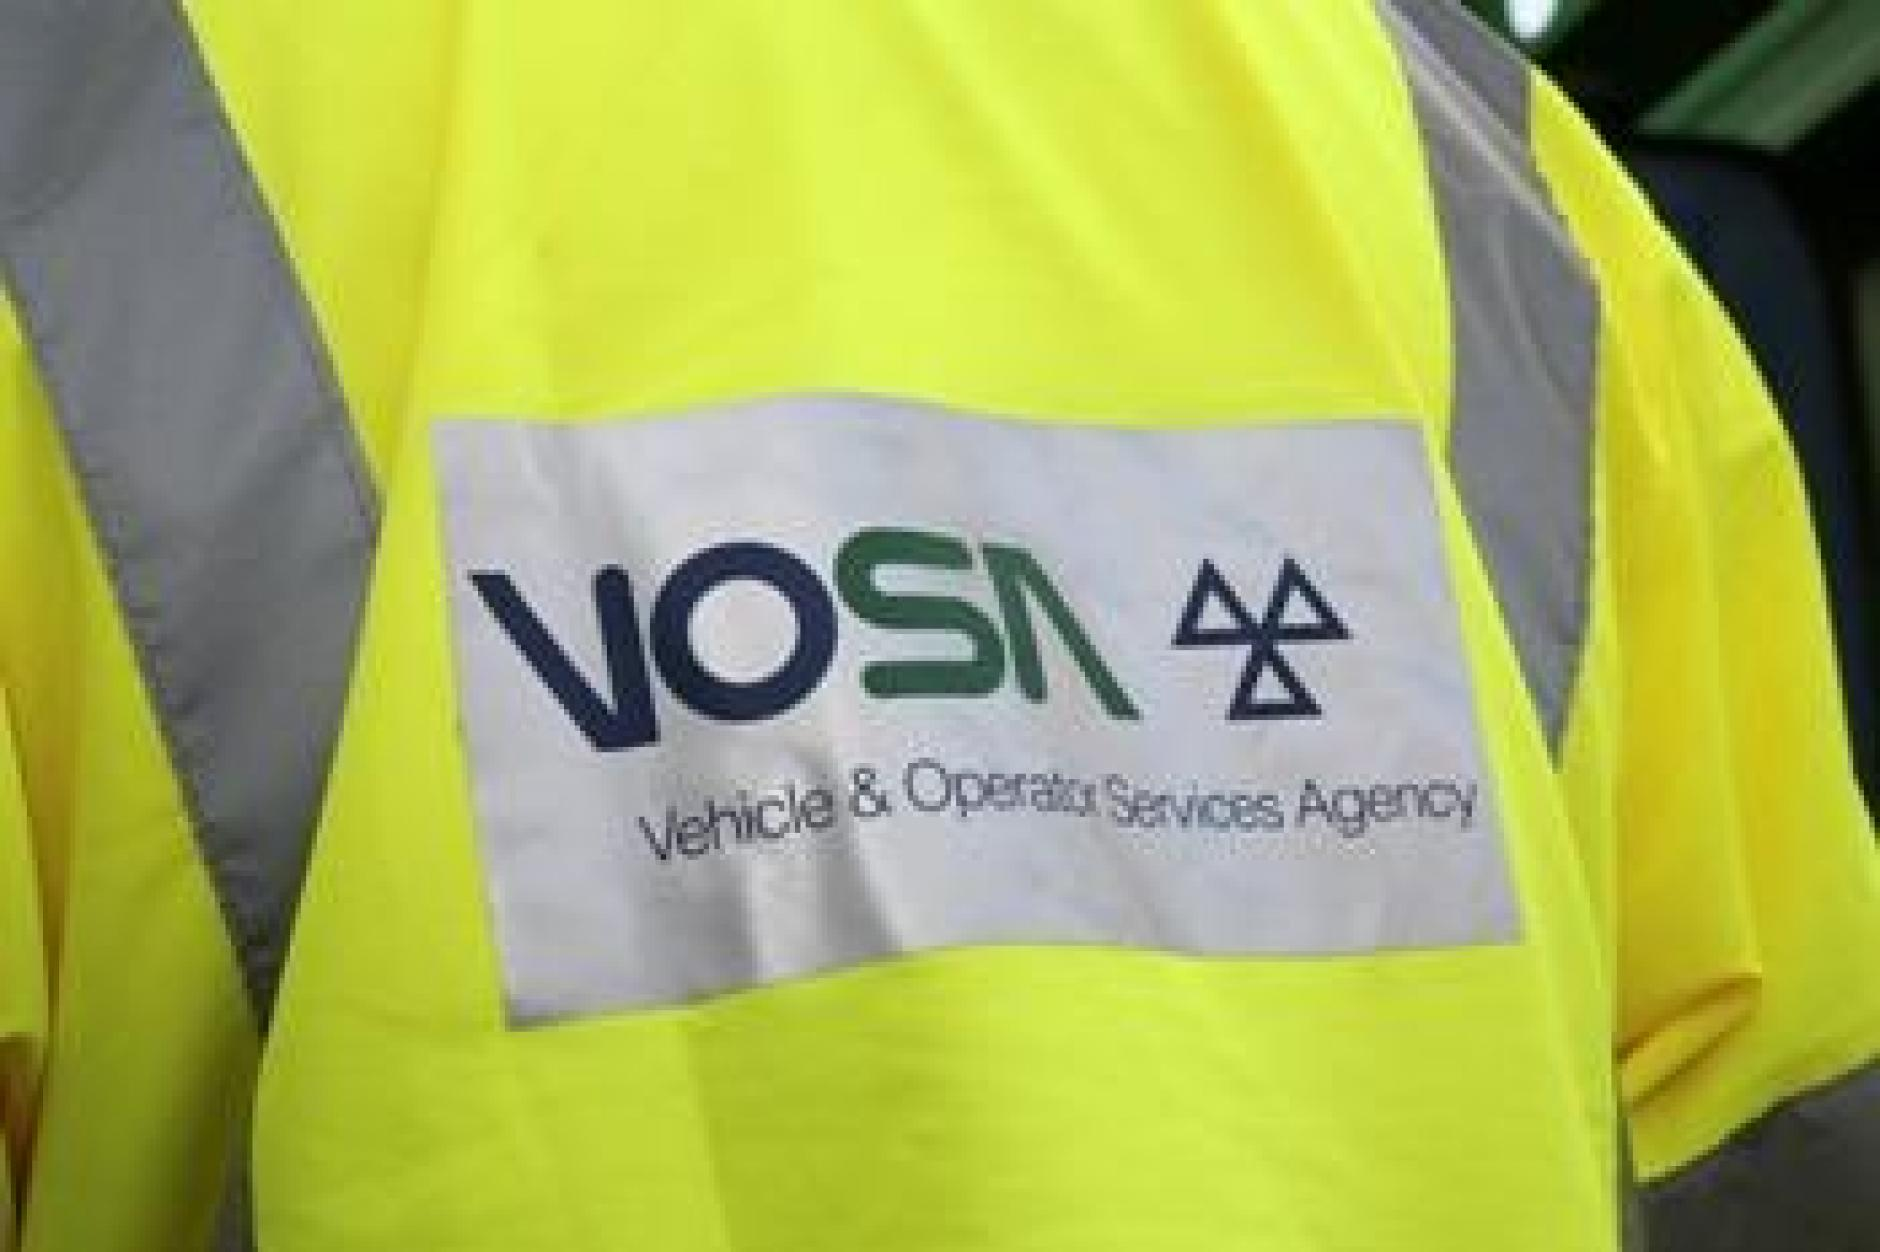 vosa makes updated hgv inspection manual available on line rh commercialmotor com hgv mot inspection manual 2018 Dot Inspection Manual